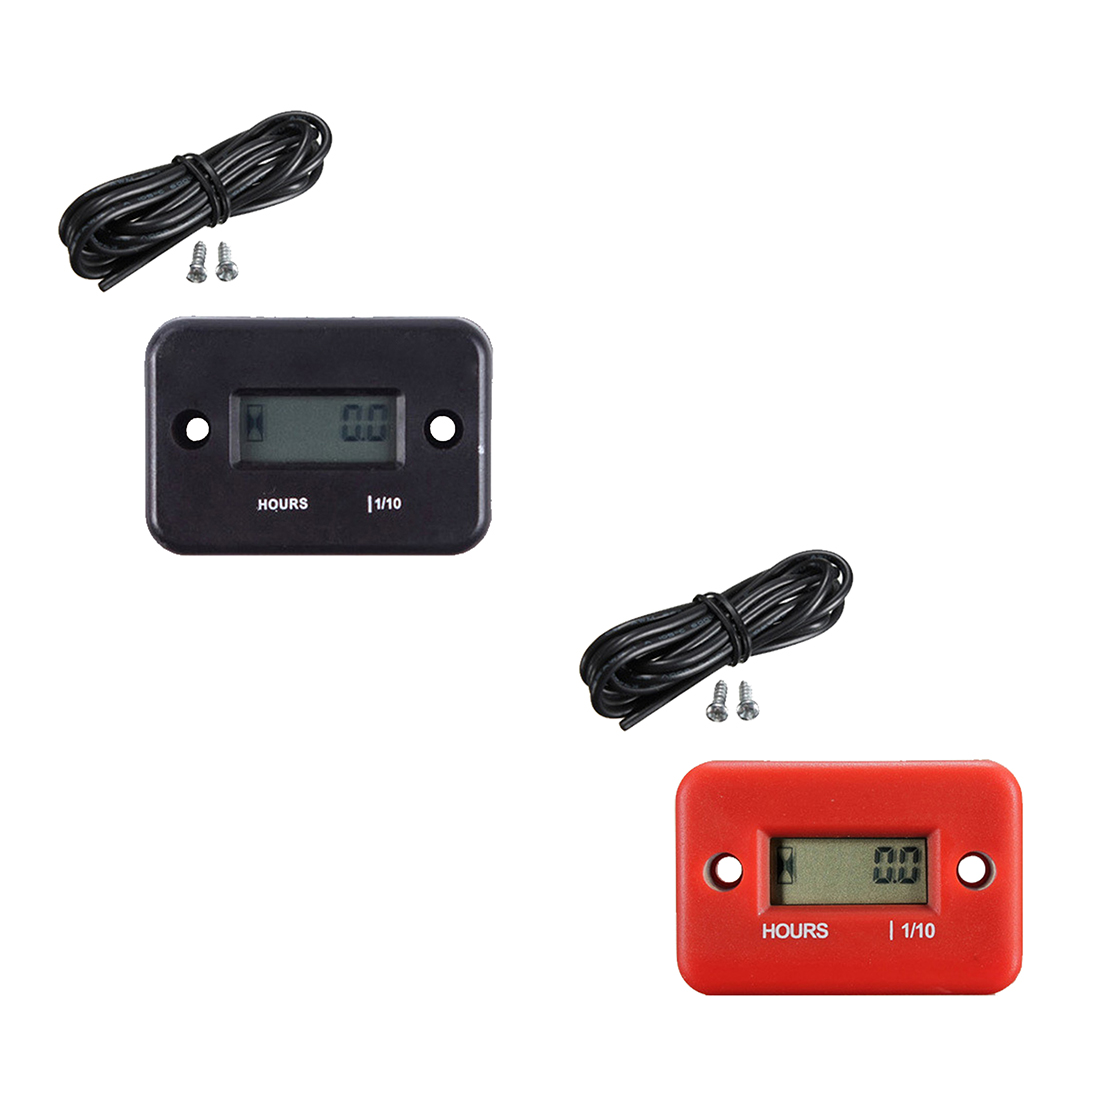 1pcs New Inductive Digital Hour Meter Waterproof LCD Display for Bike Motorcycle ATV Snowmobile Marine Boat Ski Dirt Gas Engine waterproof snap in dc 4 5 12v 24v 36v 48v 60v hour meter counter for generator marine atv motorcycle snowmobile boat jet ski utv